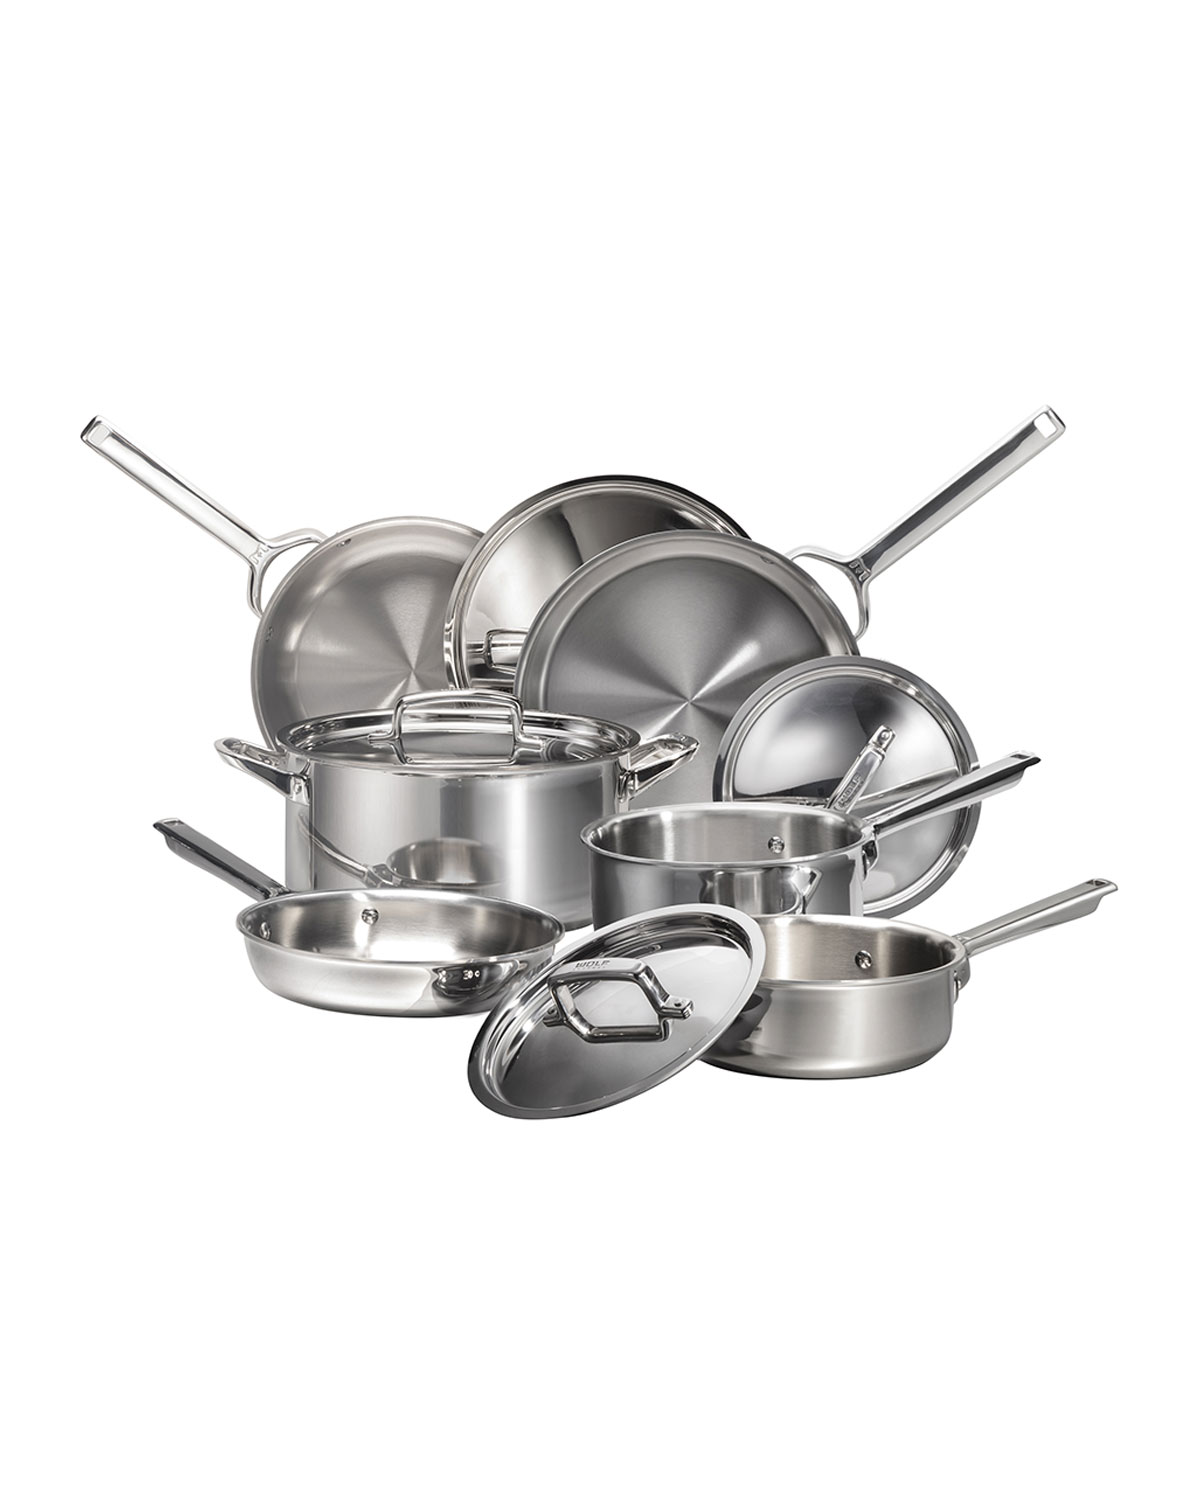 10 Piece Ultimate Brush Collection: Wolf Gourmet 10-Piece Cookware Set